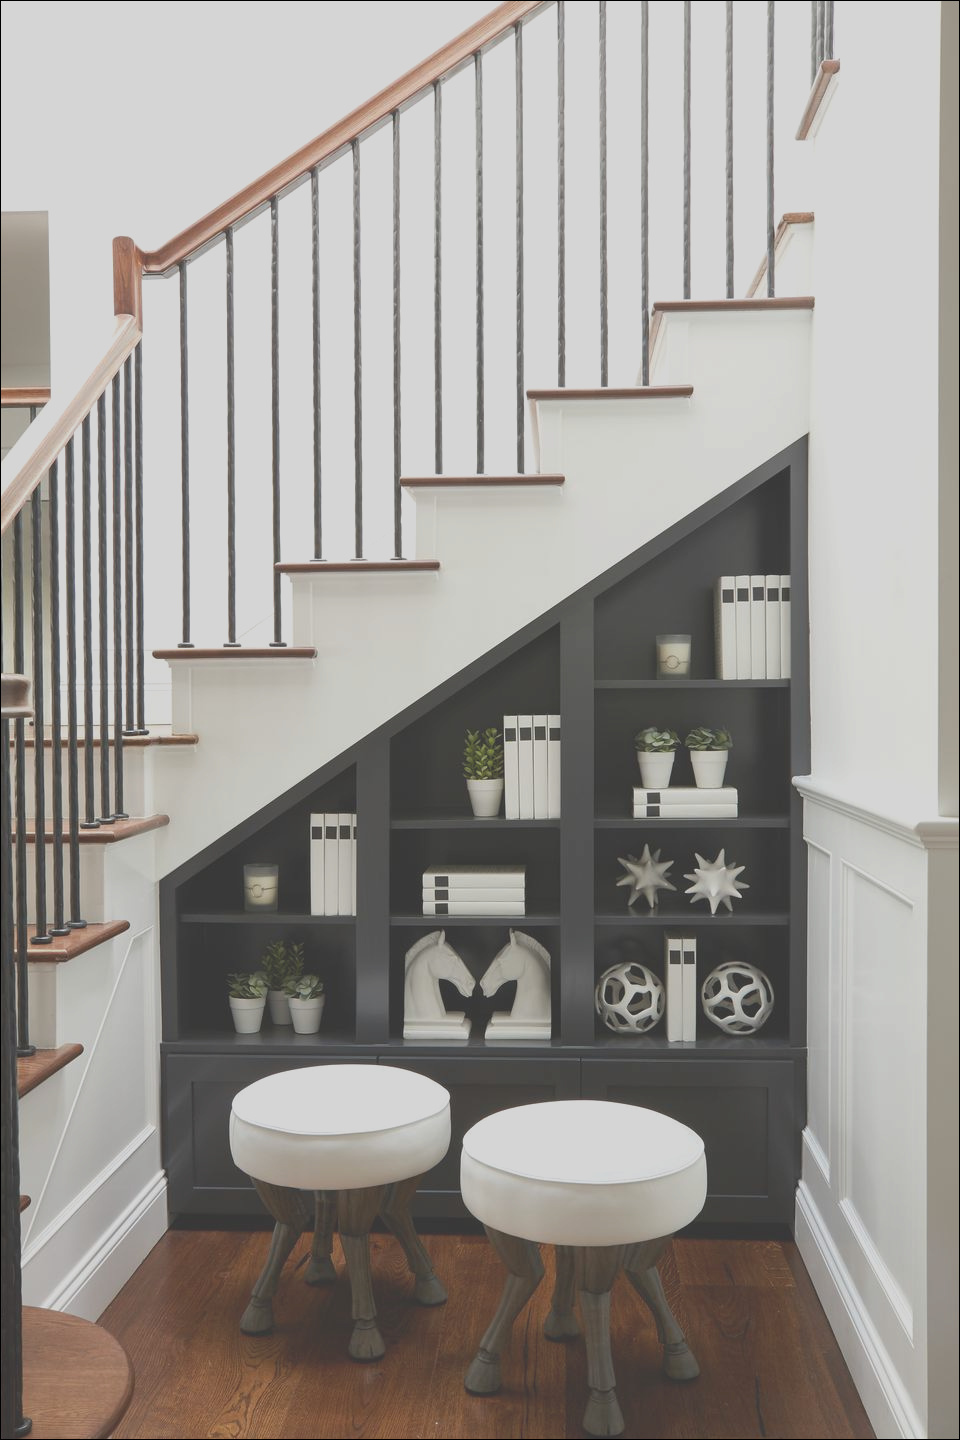 space under the stairs ideas